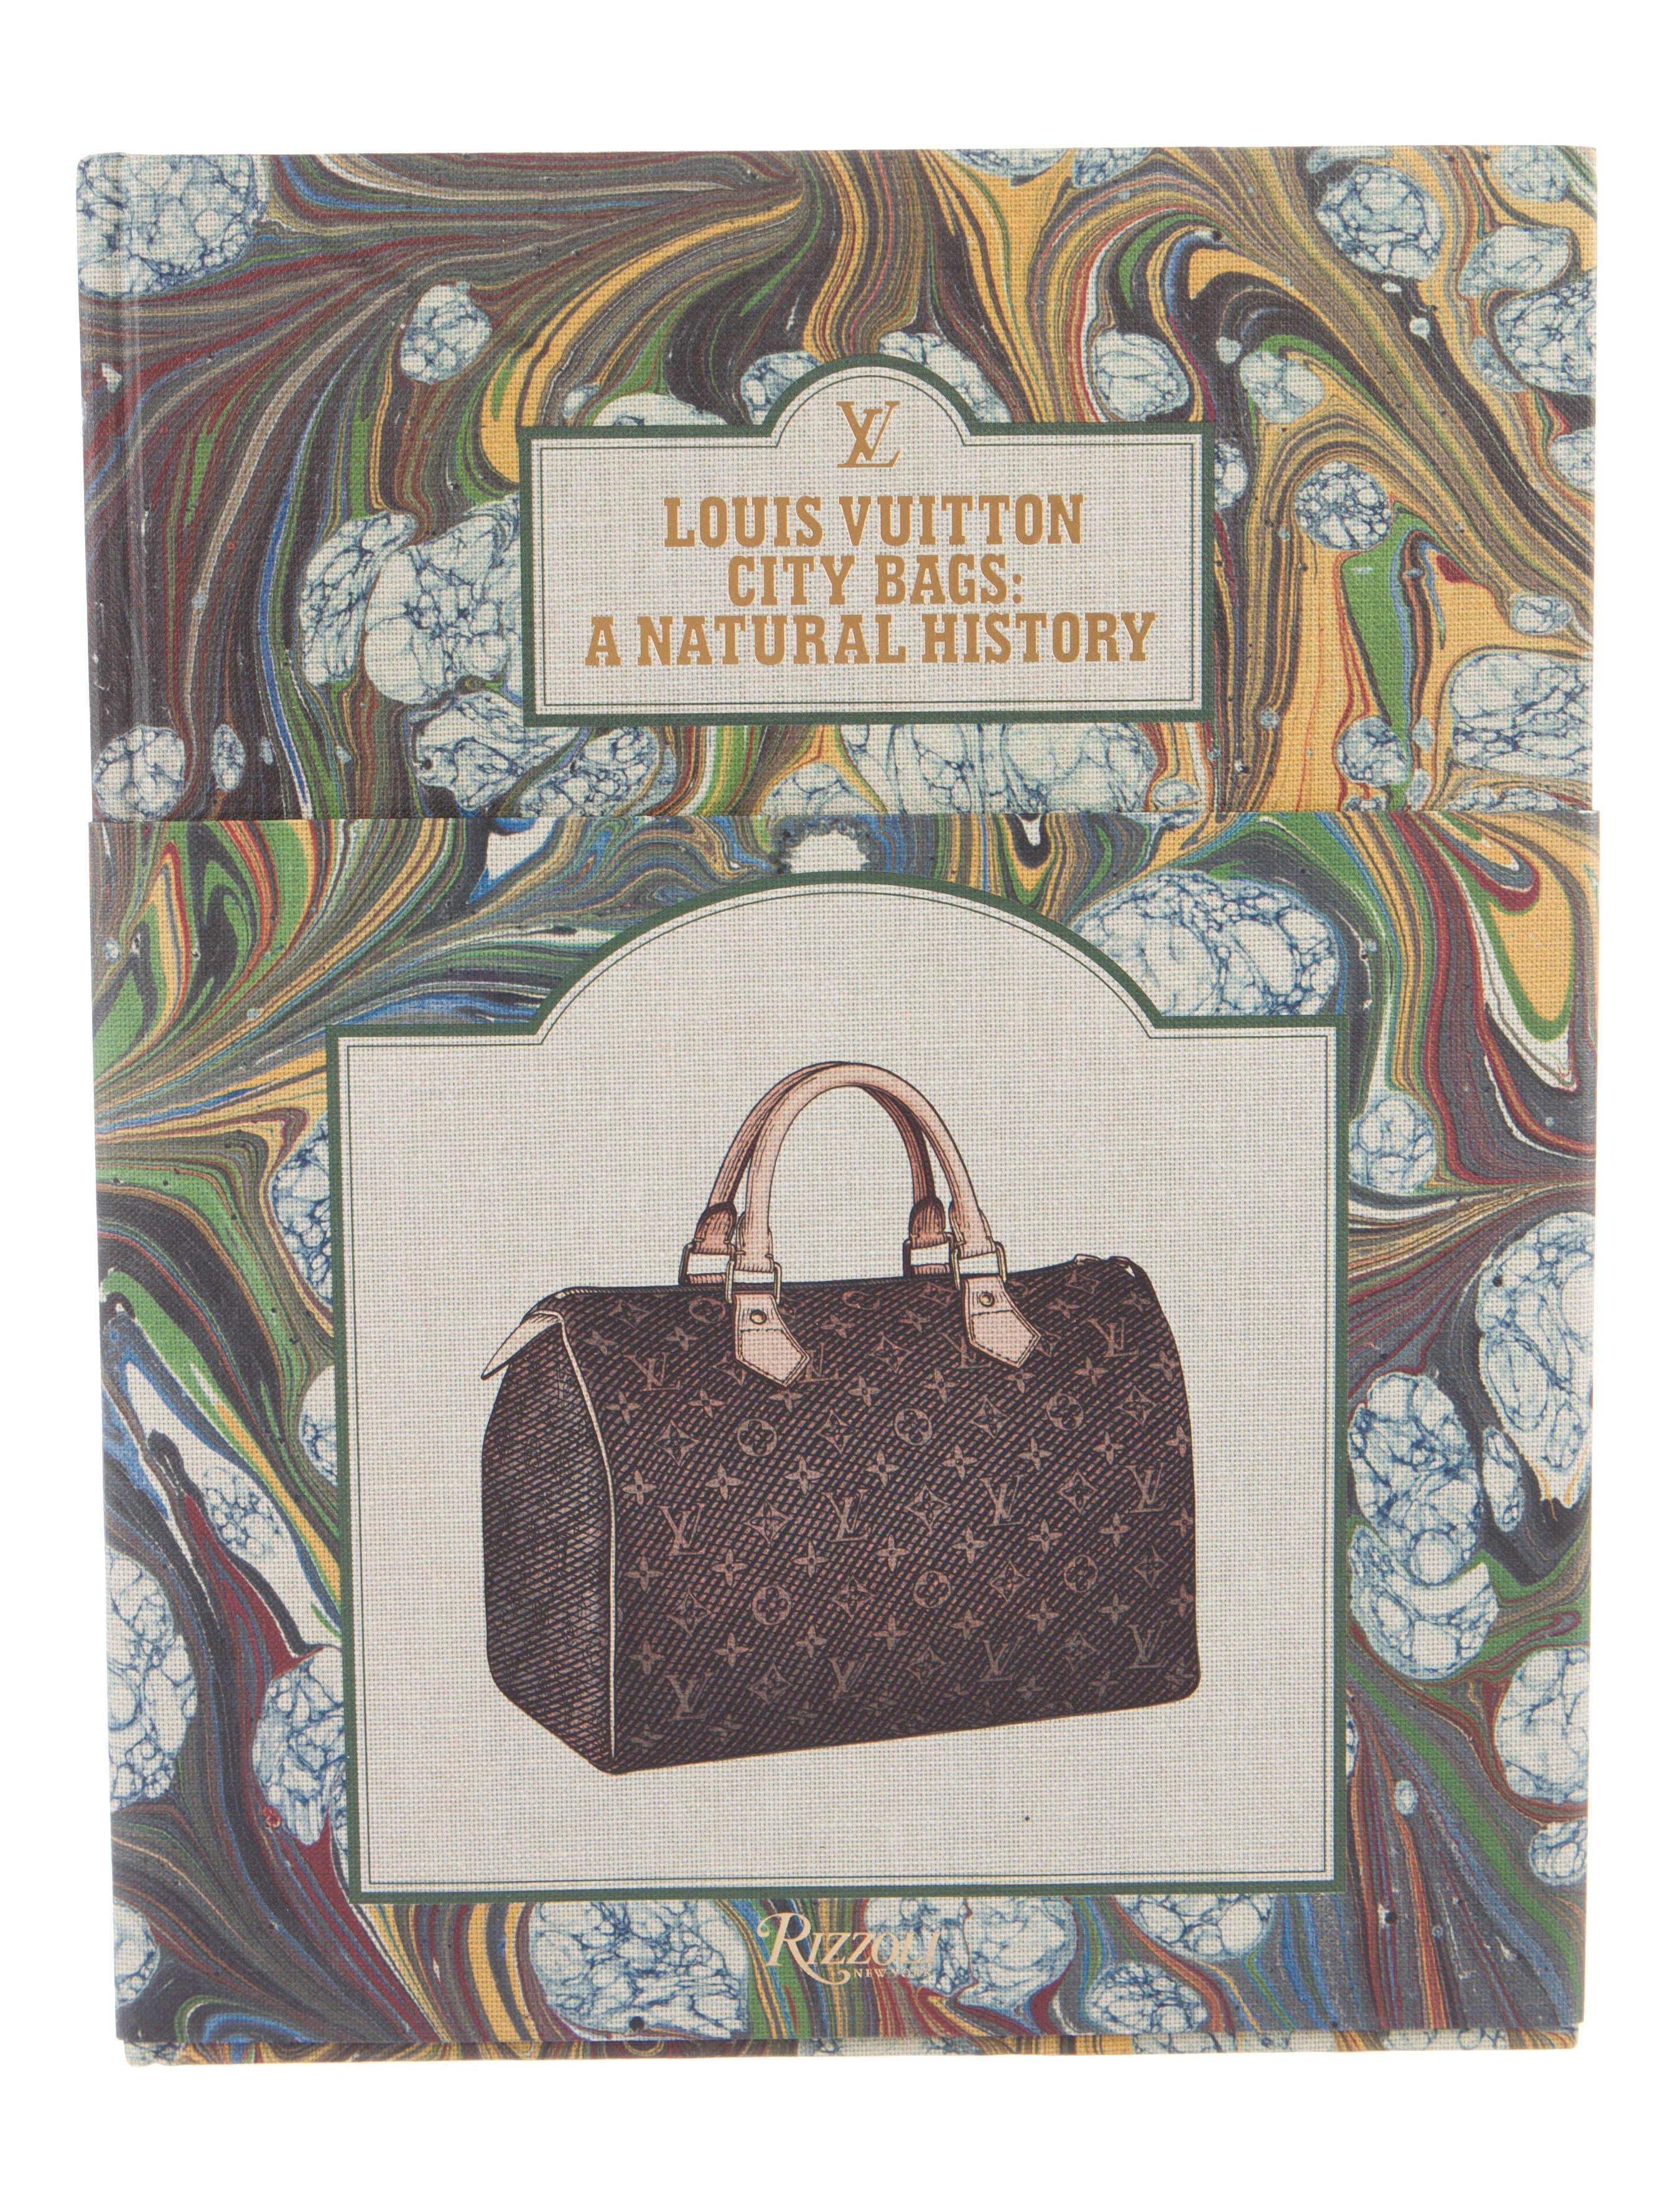 rizzoli louis vuitton city bags a natural history decor and accessories rizzo20045 the. Black Bedroom Furniture Sets. Home Design Ideas